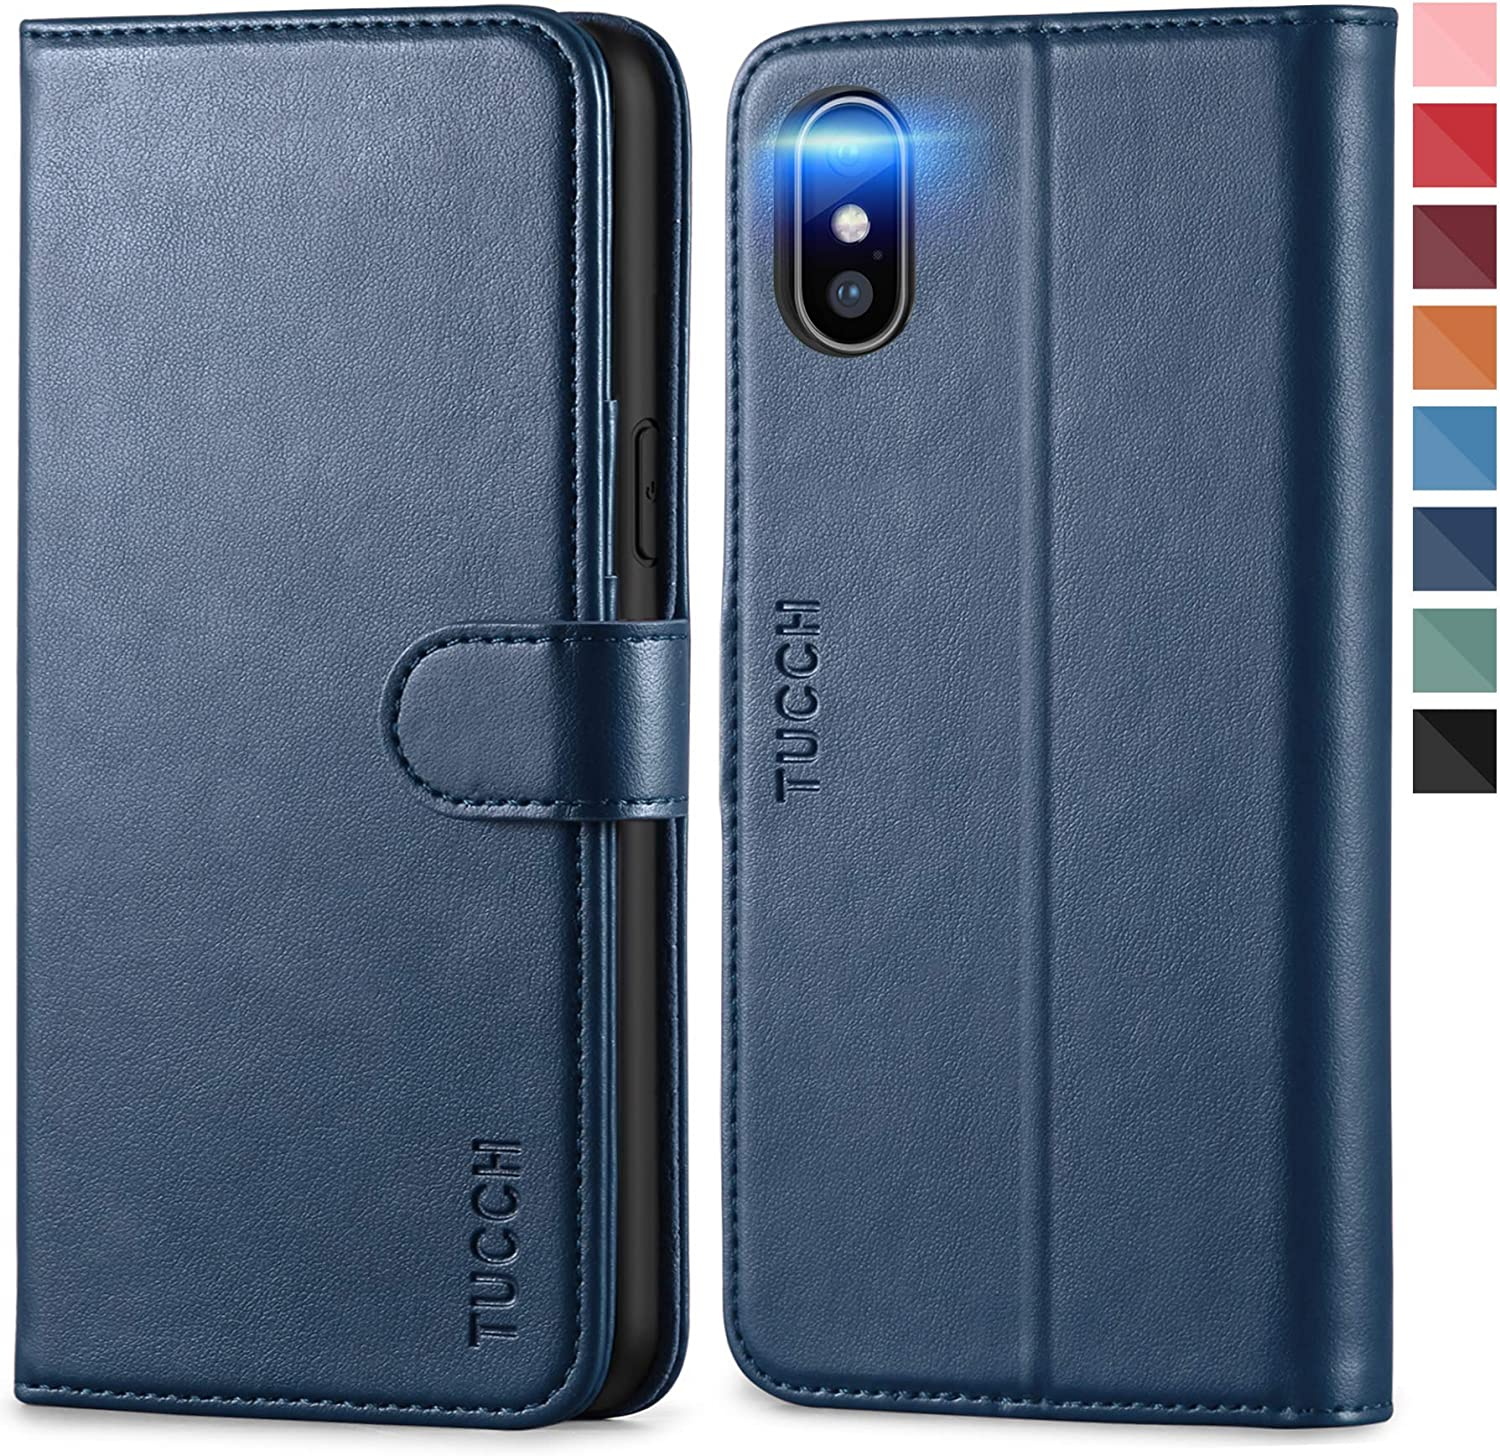 TUCCH iPhone Xs Case, iPhone Xs Wallet Case, Stand PU Leather Flip Book Case RFID Blocking Wireless Charging Credit Card Slot, Auto Wake/Sleep Shockproof TPU Shell Compatible with iPhone Xs-Dark Blue